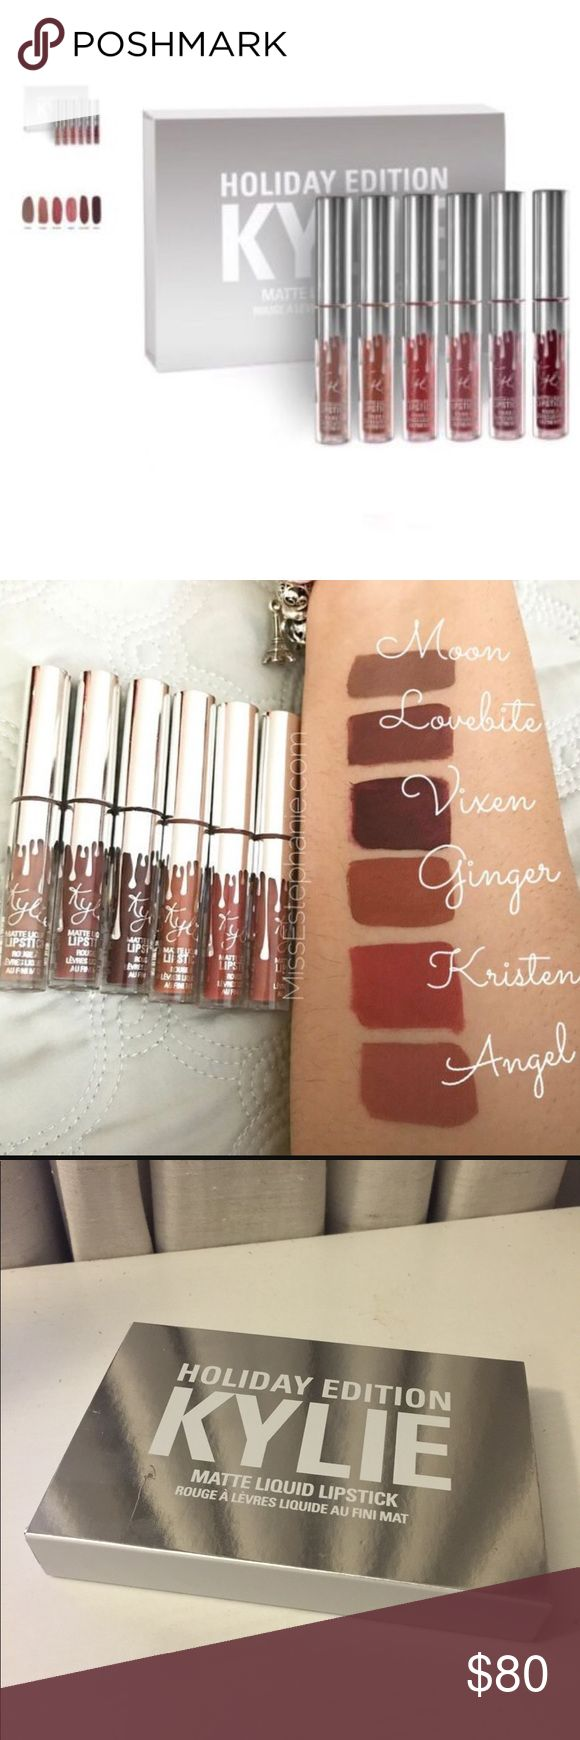 Kylie Cosmetics Holiday Edition Mini Kylie Cosmetics Holiday Edition Mini  Brand new. Never been used  Purchased from Kylie cosmetics I purchased 2 sets and never used this one Swatches in photo is what I found online   Comes with 6 colors  Moon Matte Lipstick Ginger Matte Lipstick Kristen  Matte Lipstick Angel Matte Lipstick Love Bite Matte Lipstick Vixen Matte Lipstick Kylie Cosmetics Makeup Lipstick